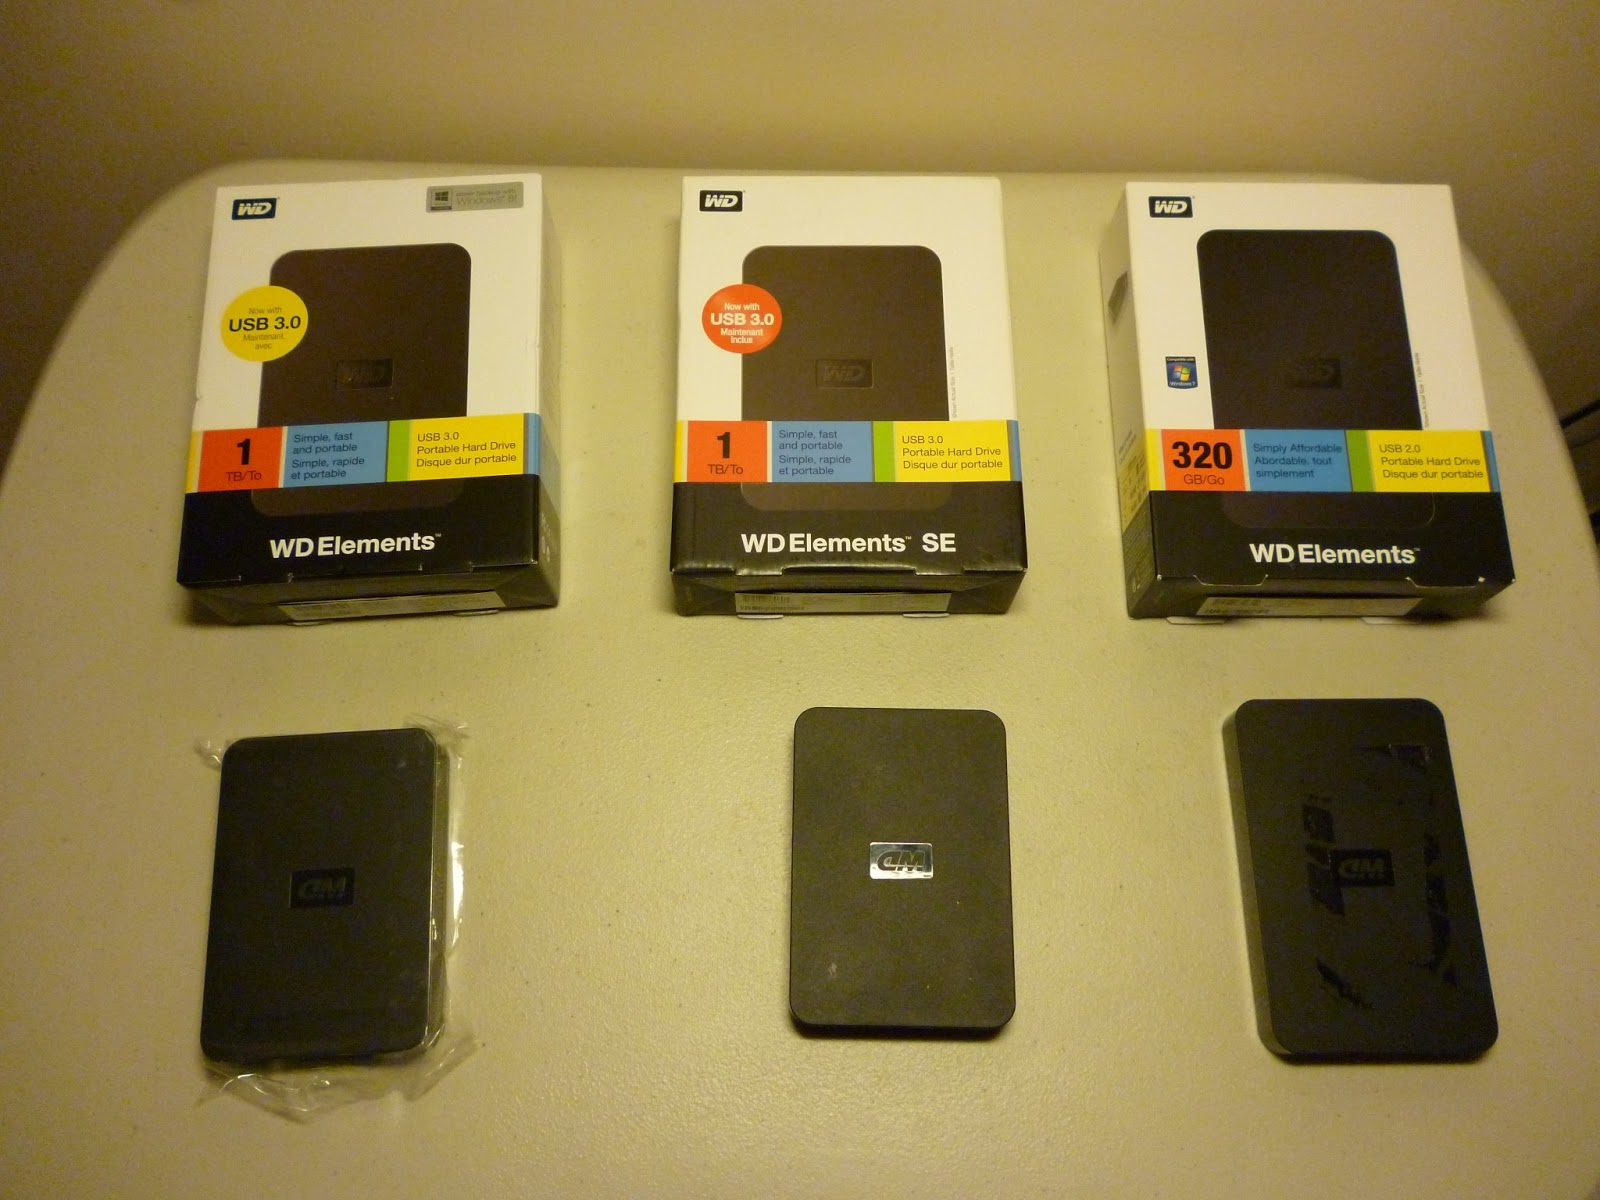 Comparing the different versions of WD Elements, WD Elements SE